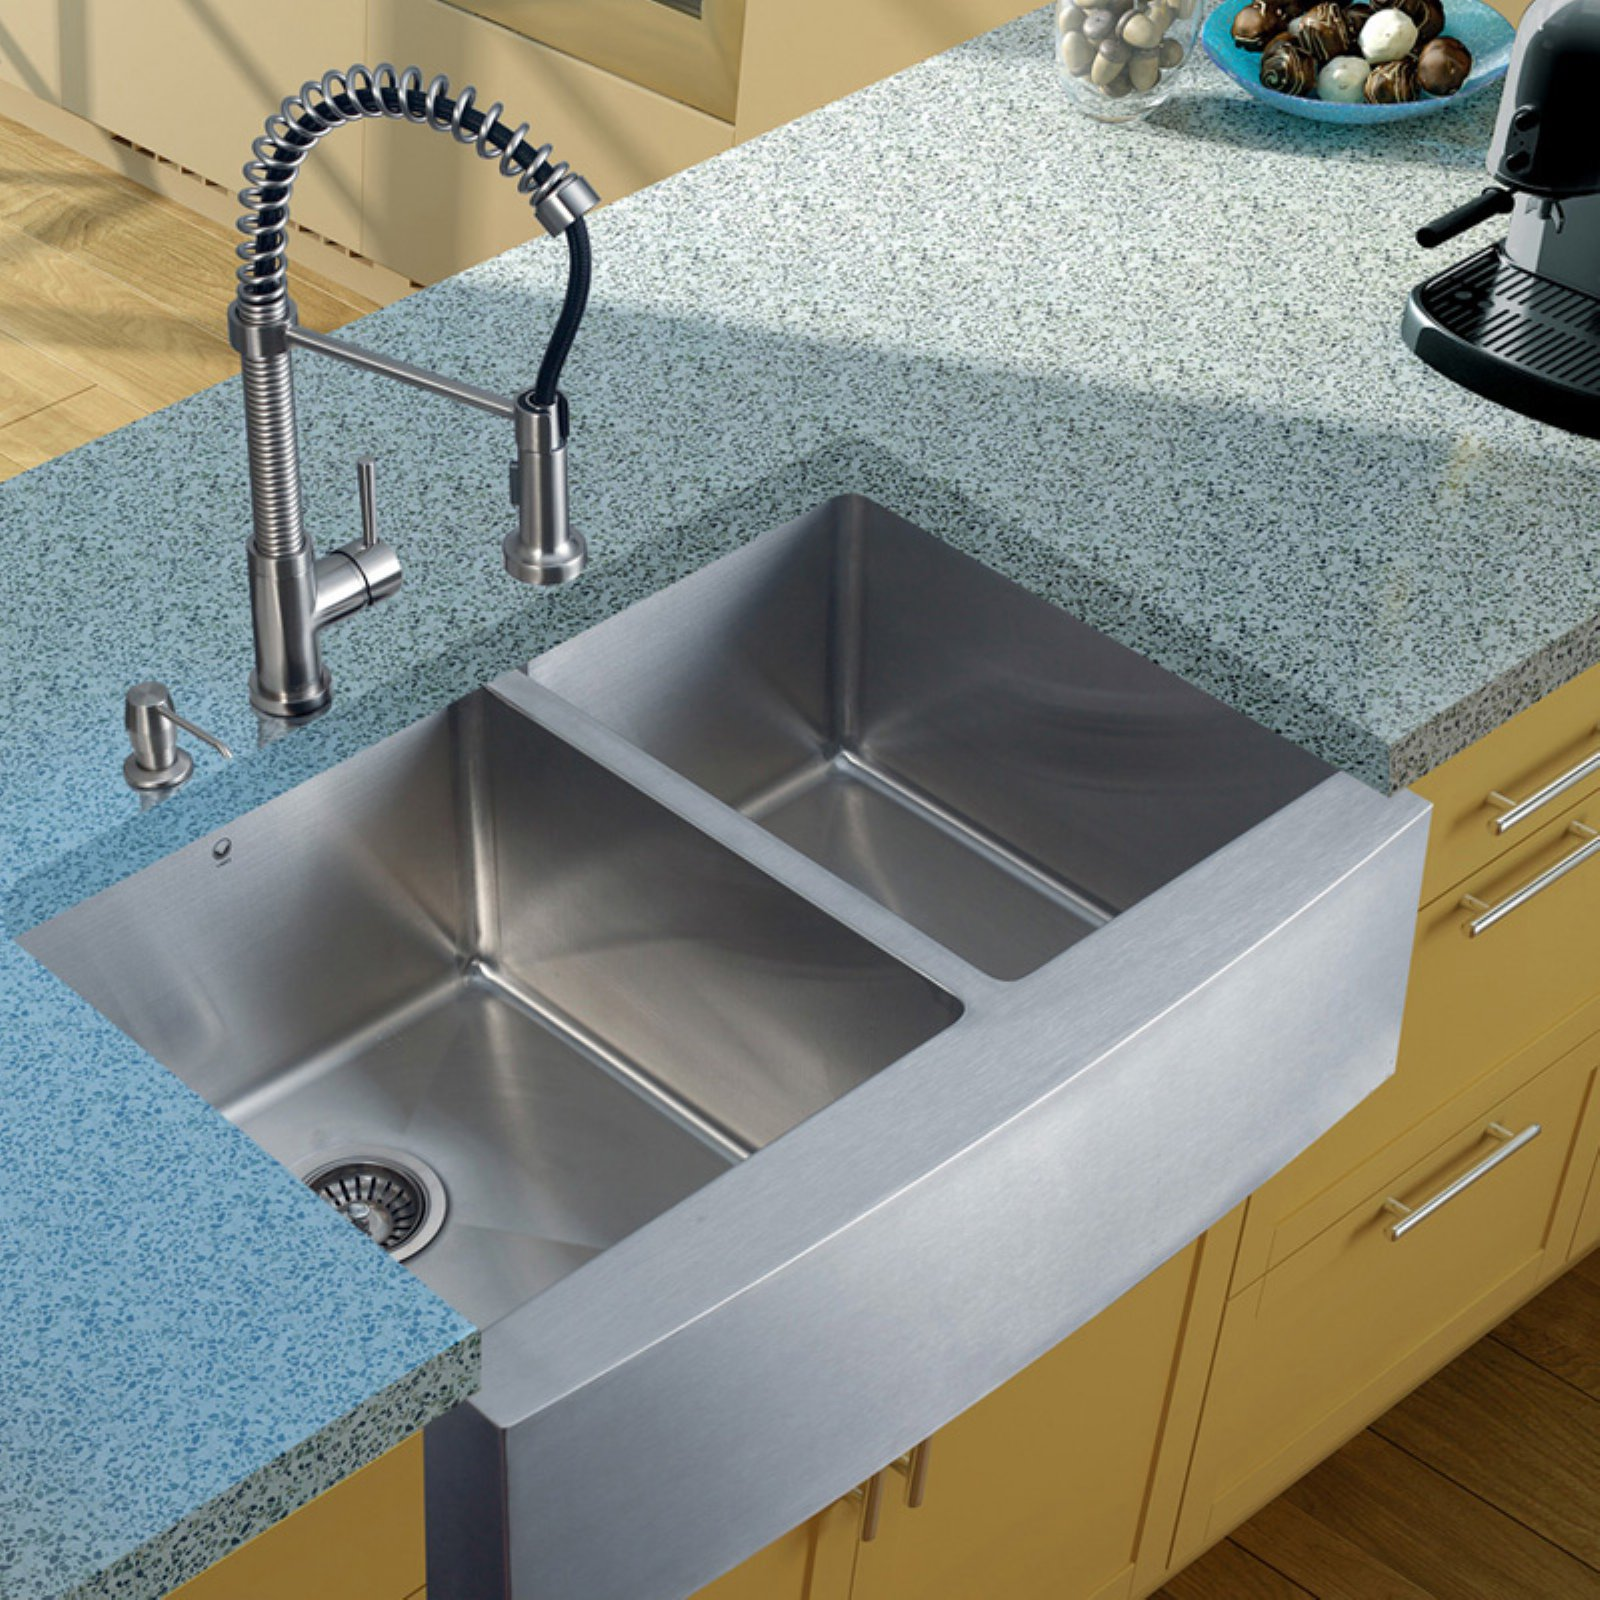 Vigo Farmhouse Stainless Steel Kitchen Sink, Faucet, 2 Strainers and Dispenser